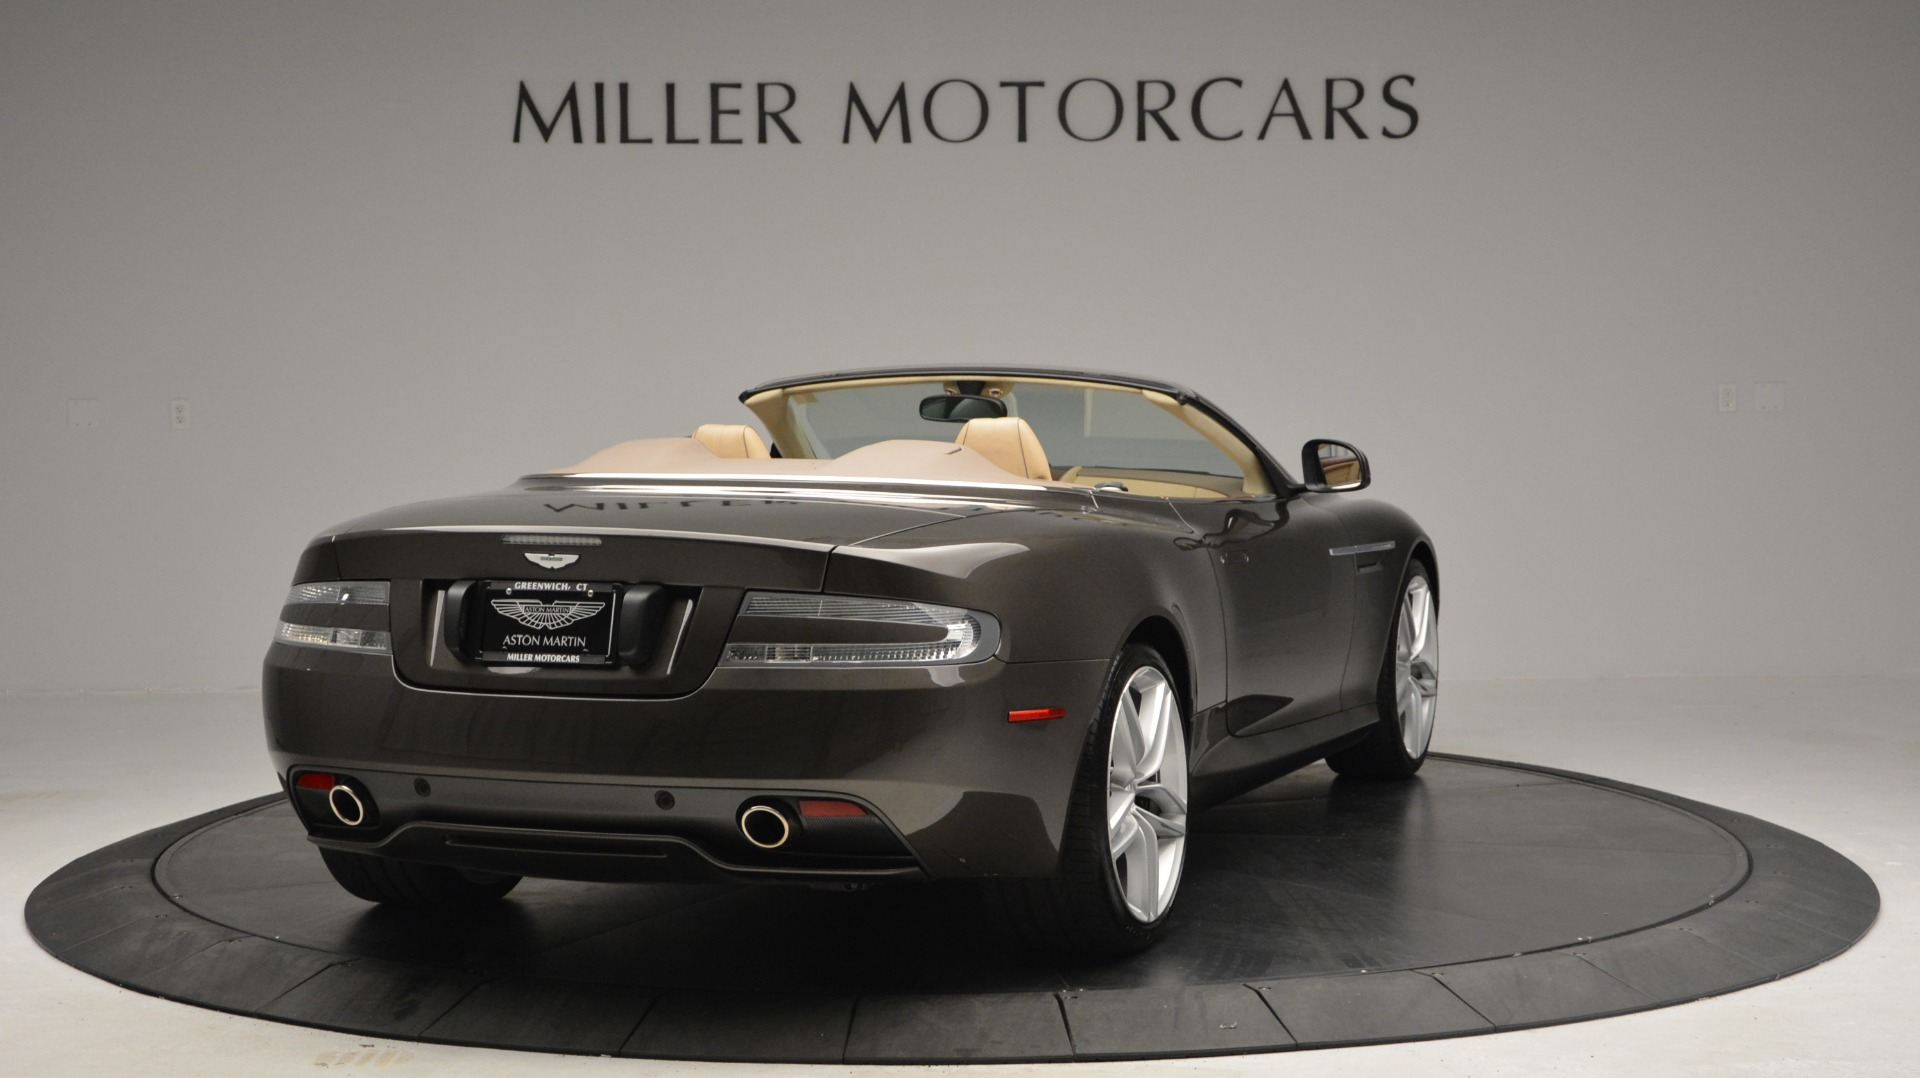 Used 2012 Aston Martin Virage Convertible For Sale In Westport, CT 3351_p7